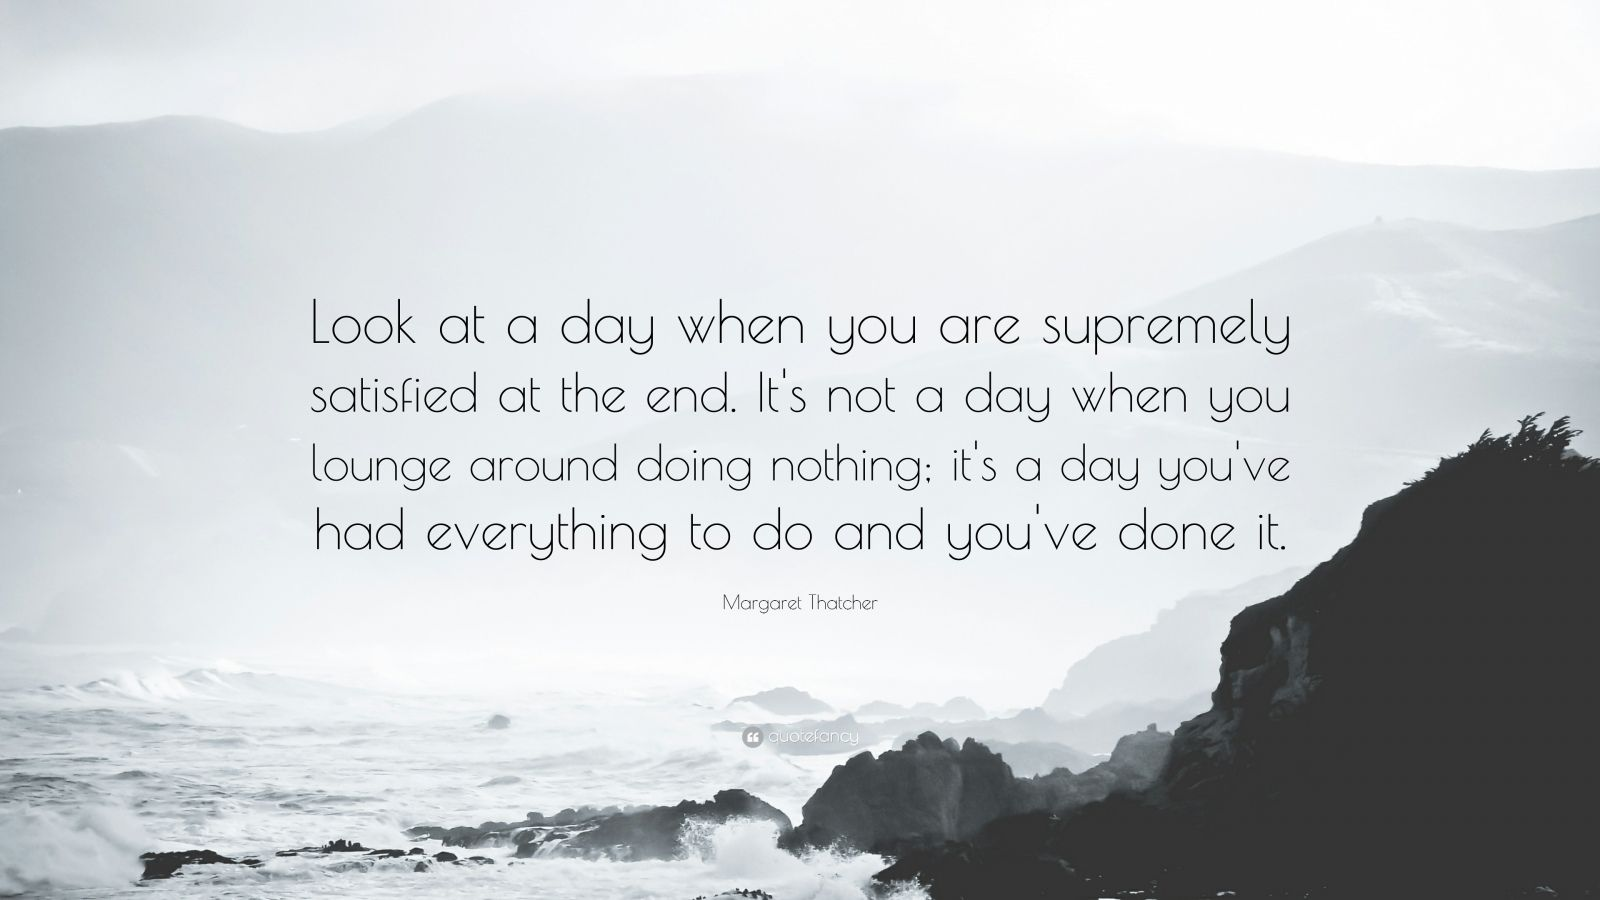 """Margaret Thatcher Quote: """"Look at a day when you are supremely satisfied at the end. It's not a day when you lounge around doing nothing; it's a day you've had everything to do and you've done it."""""""